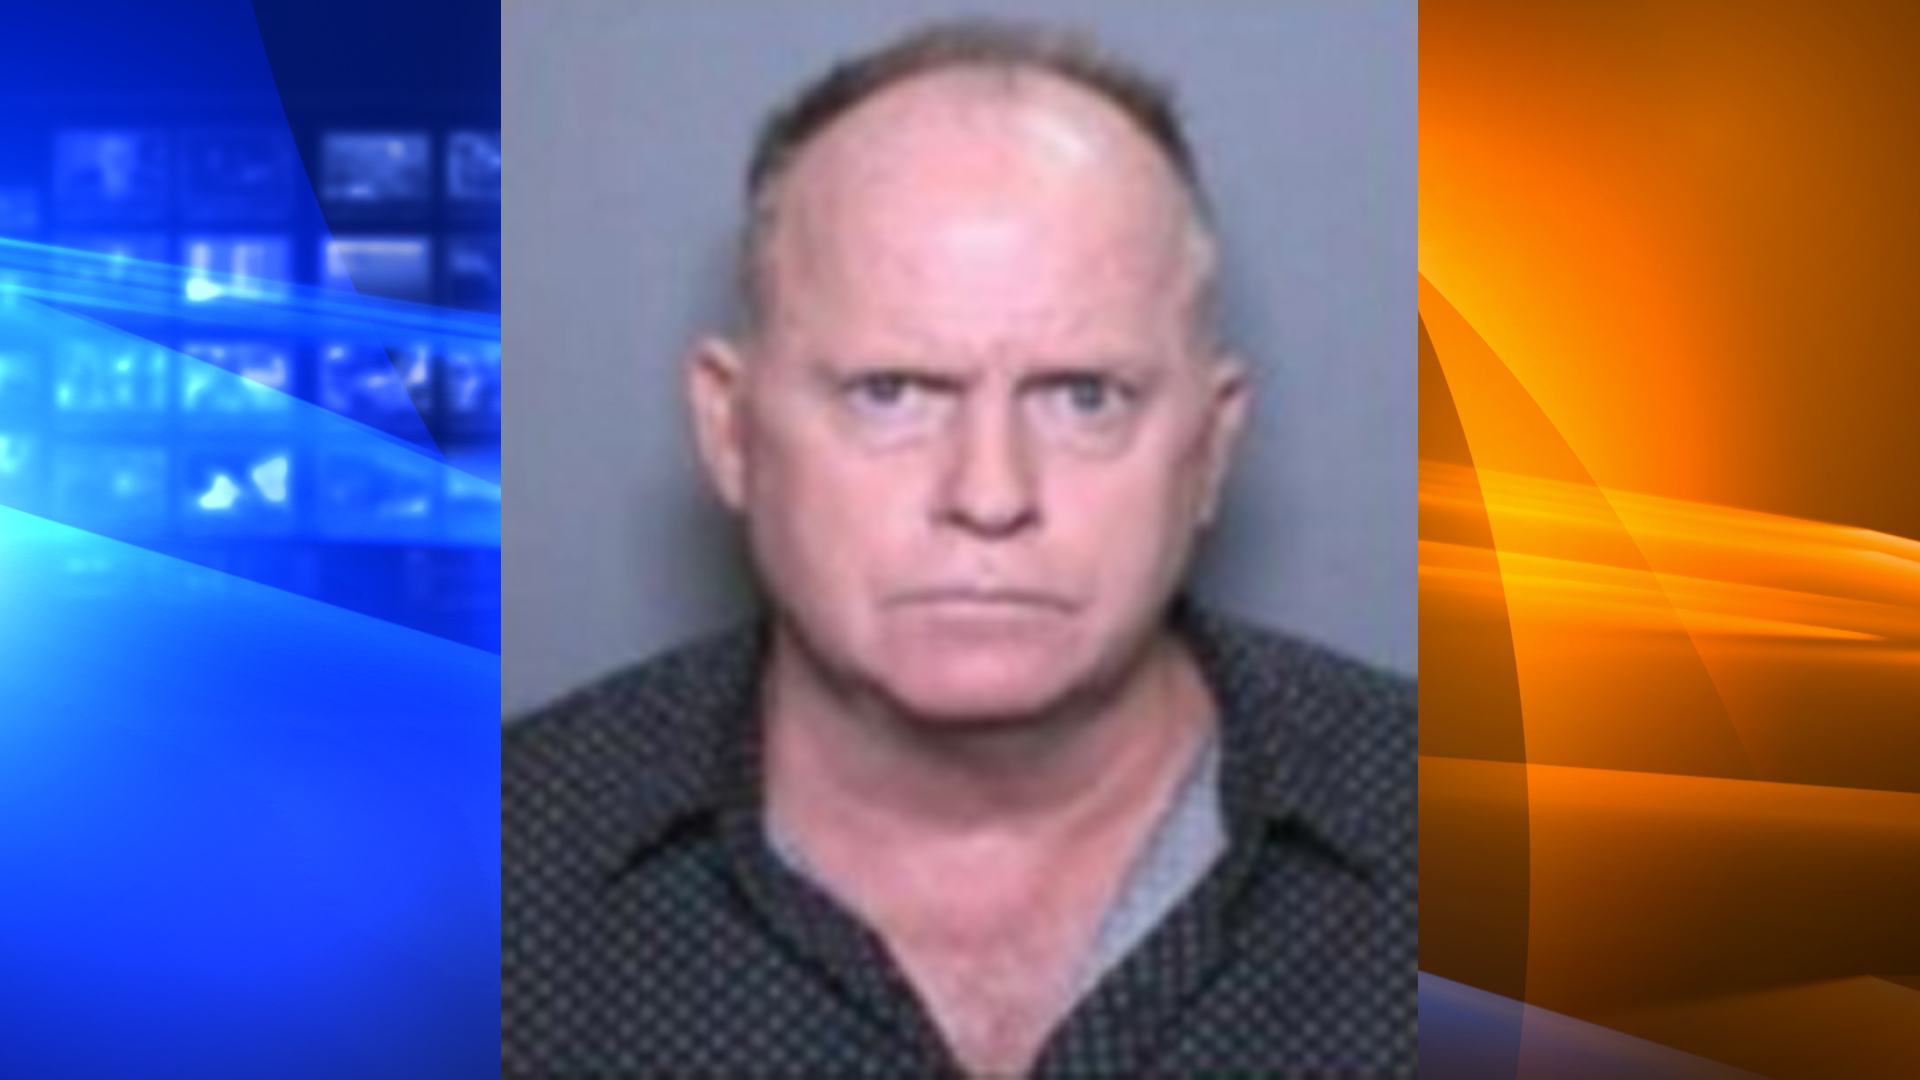 Barry Allen Buydens, 56, of La Quinta, pictured in a photo released by the Newport Beach Police Department following his arrest on Dec. 24, 2019.